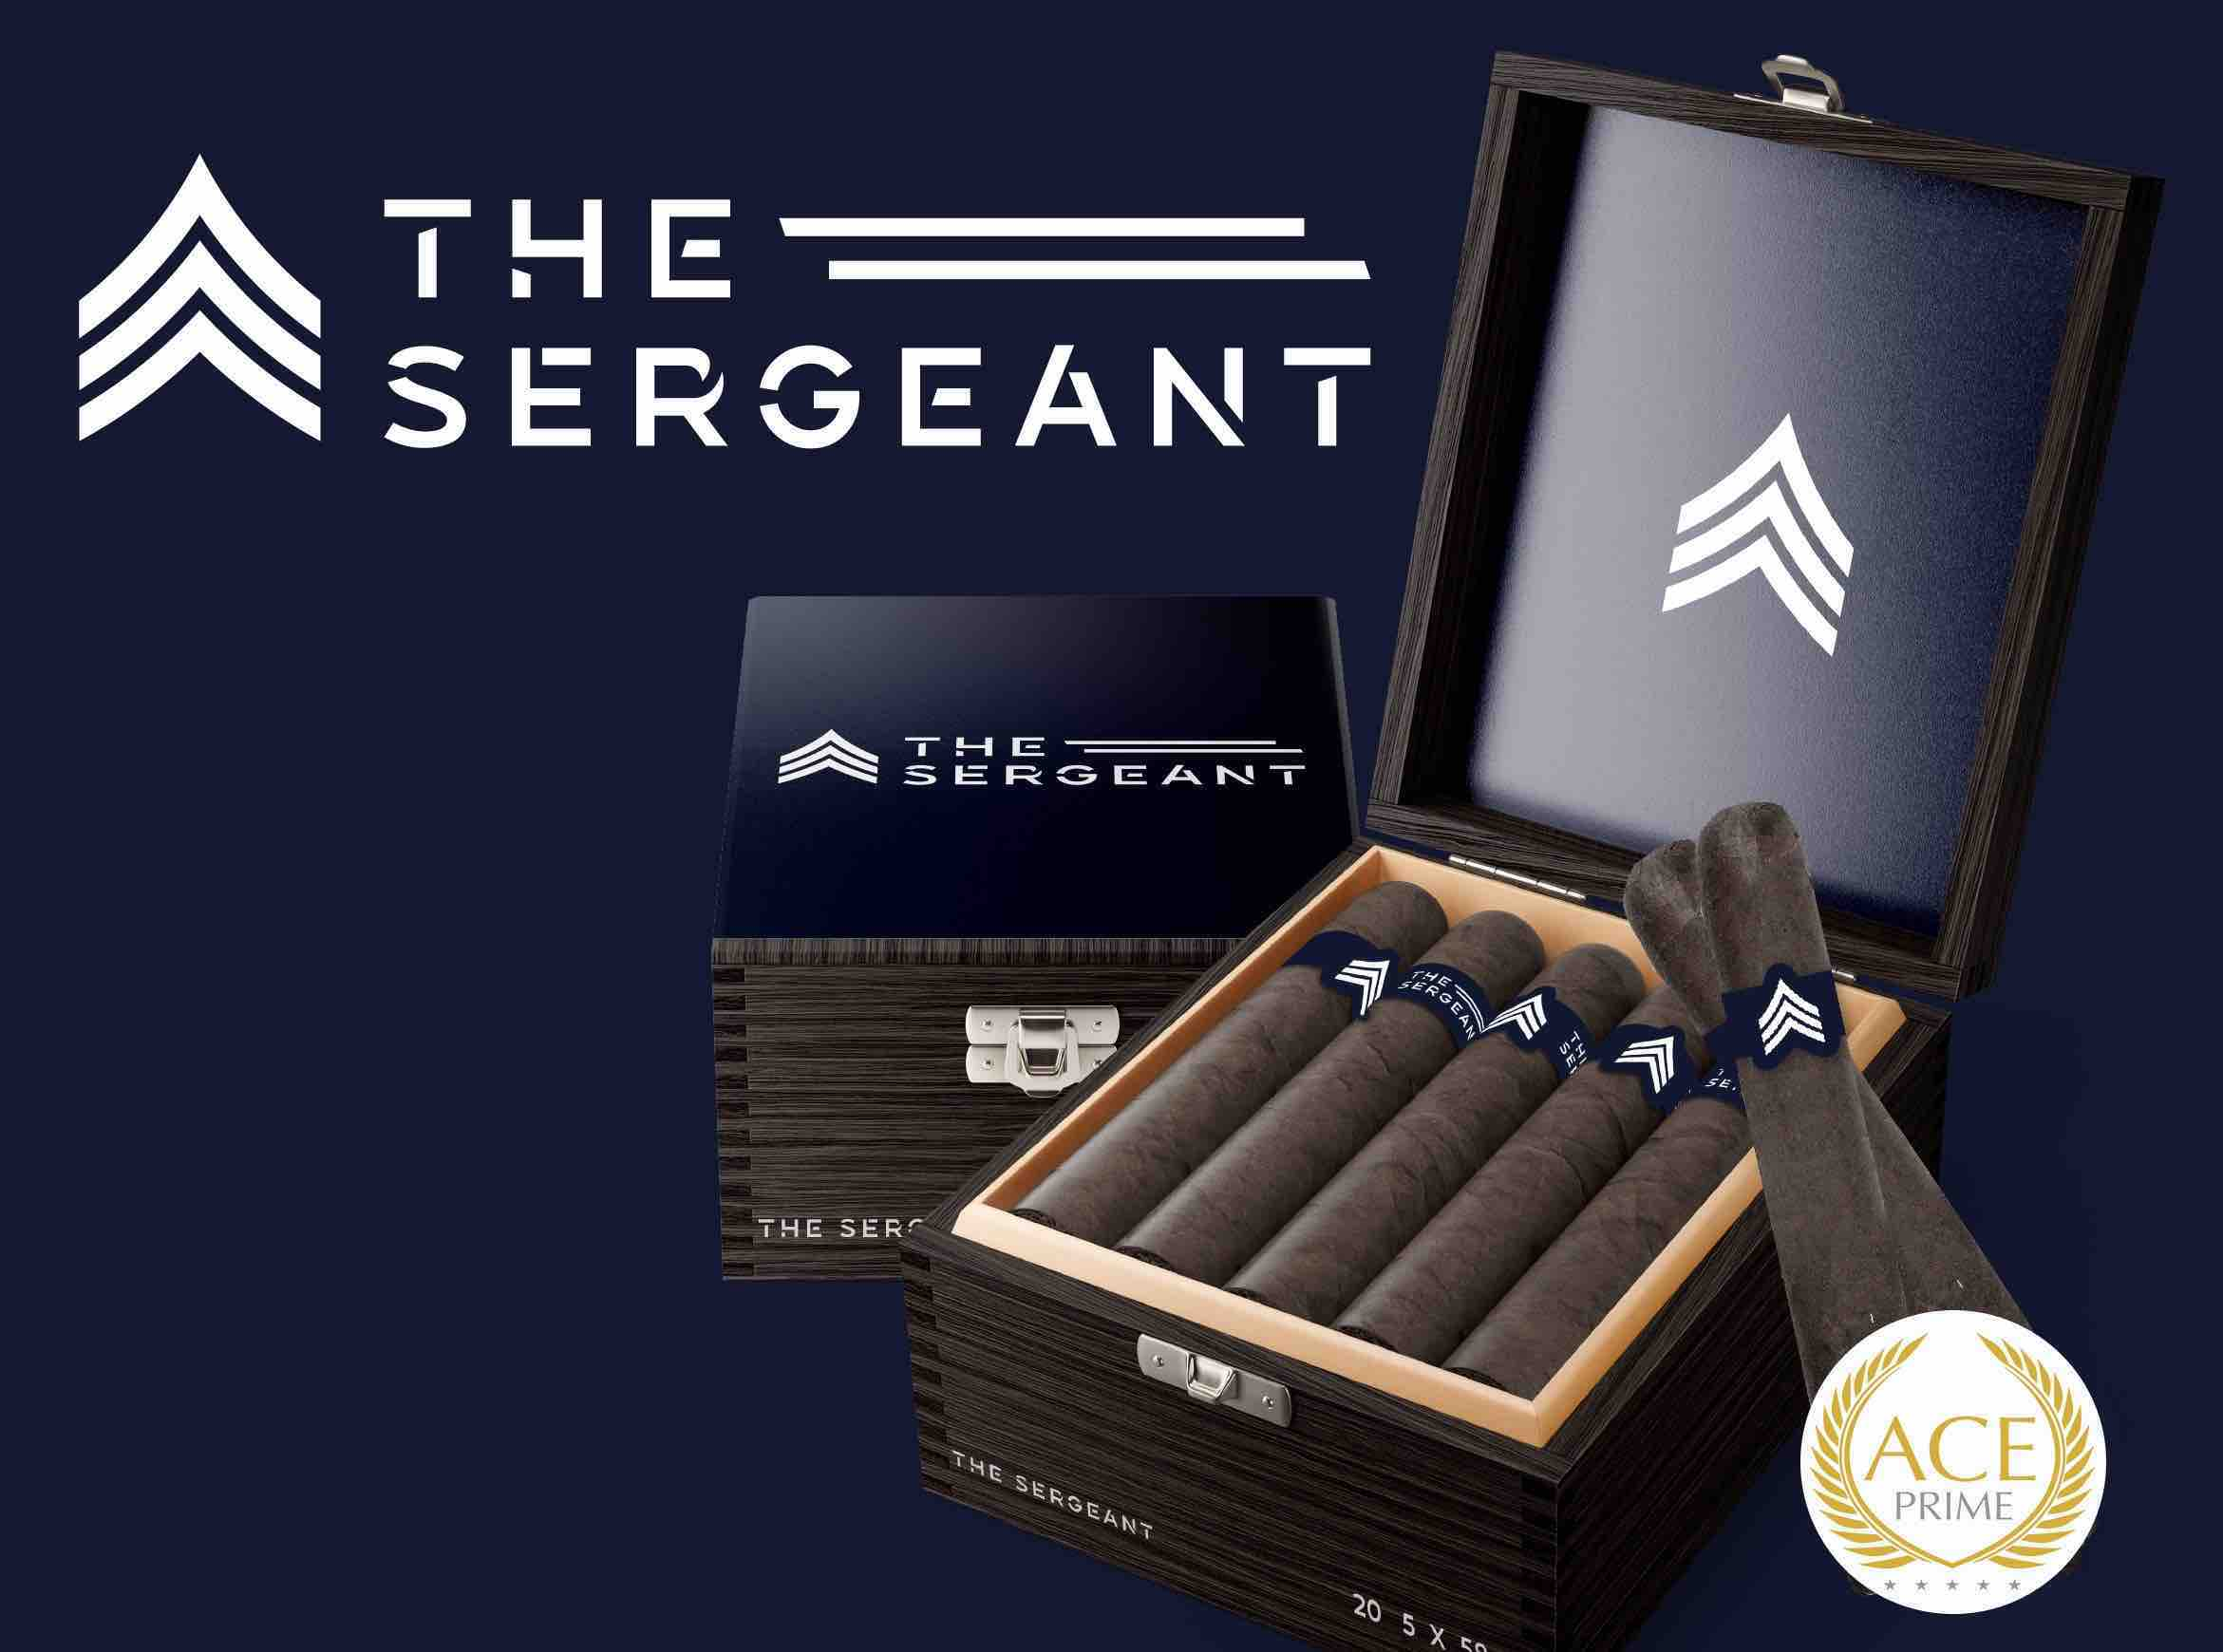 Cigar News: Ace Prime to Release The Sergeant as PCA Trade Show Exclusive